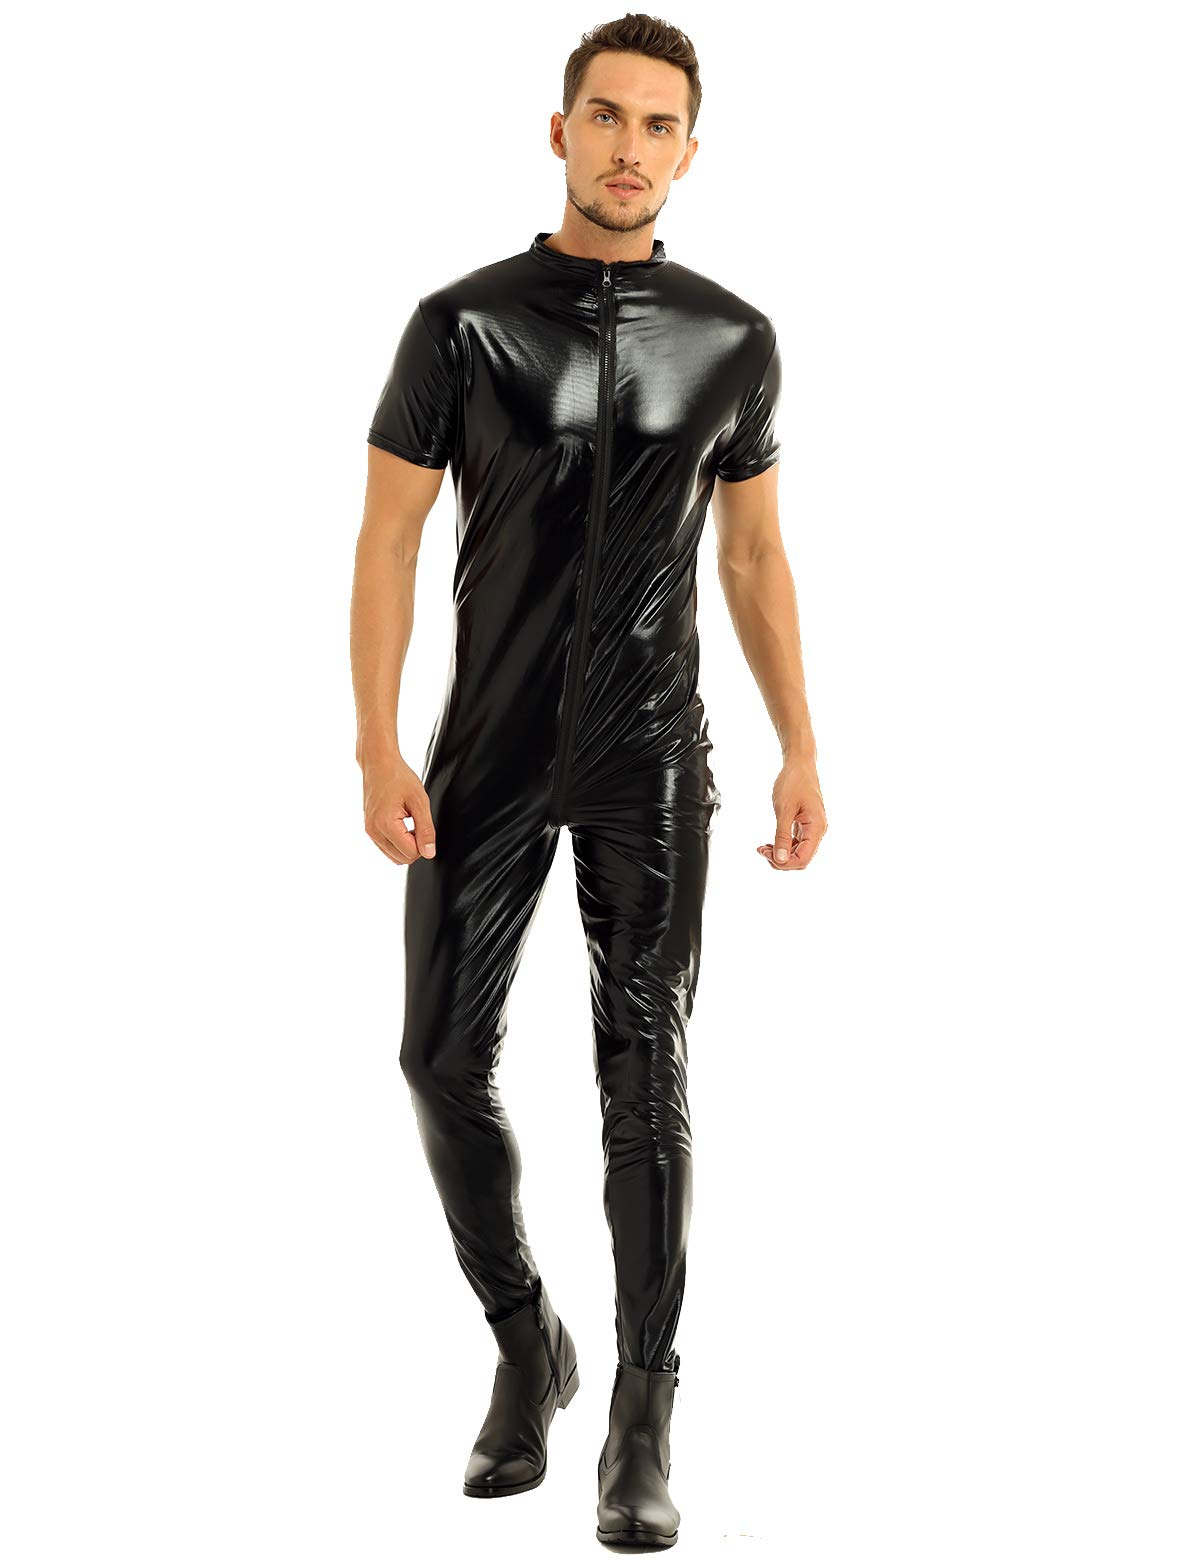 Inhzoy Mens Stretchy Patent Leather Short Sleeves Zipper Crotch Full Body Leotard Bodysuit Black Large